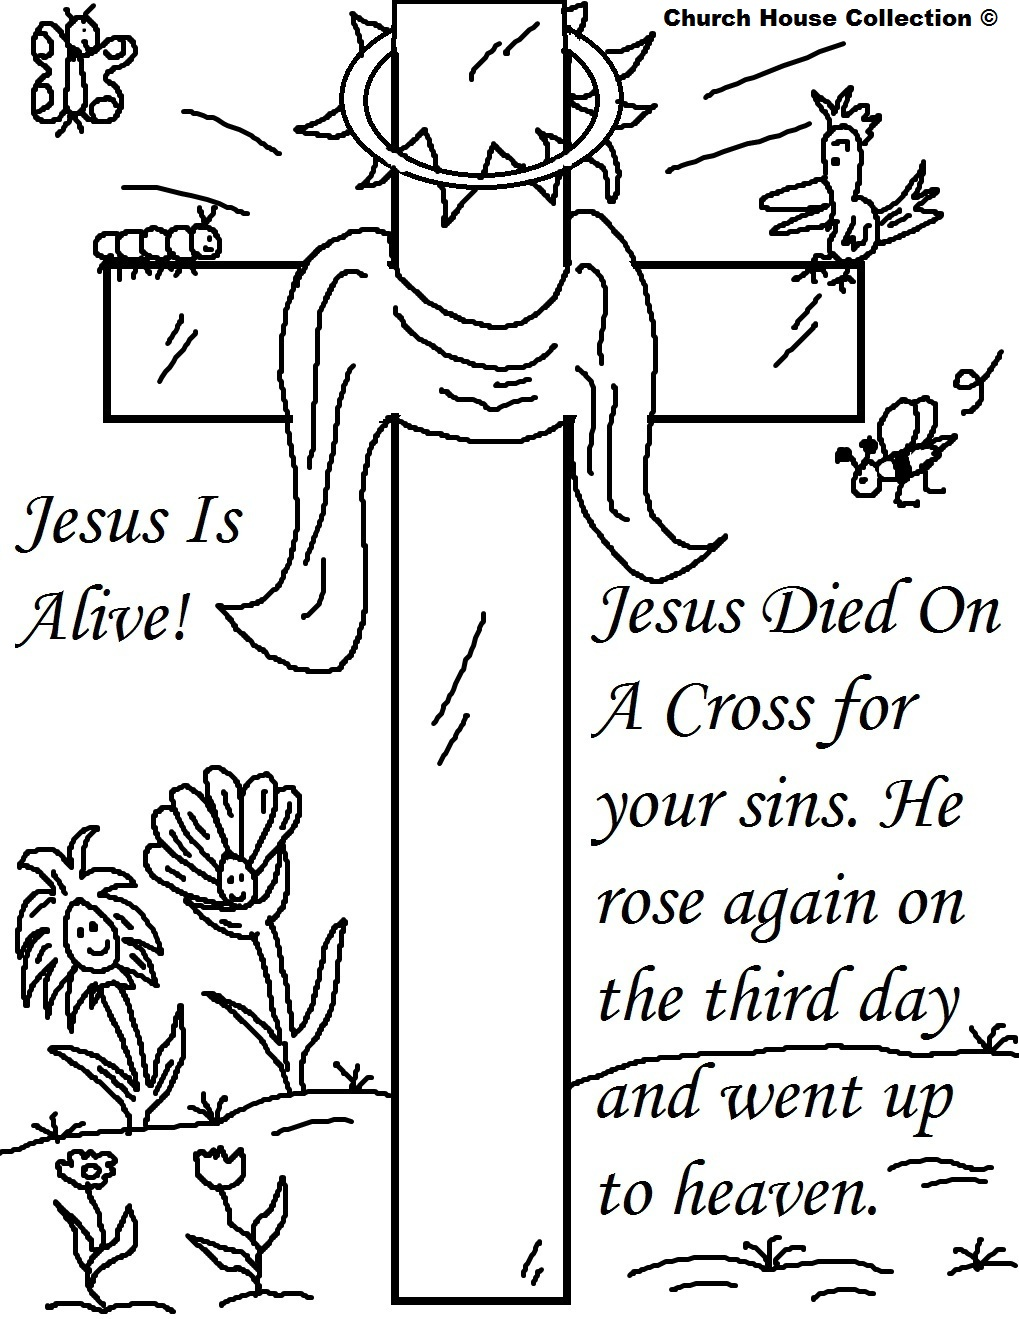 25 Religious Easter Coloring Pages Free Easter Activity Printables Printable Coloring Pages Christian